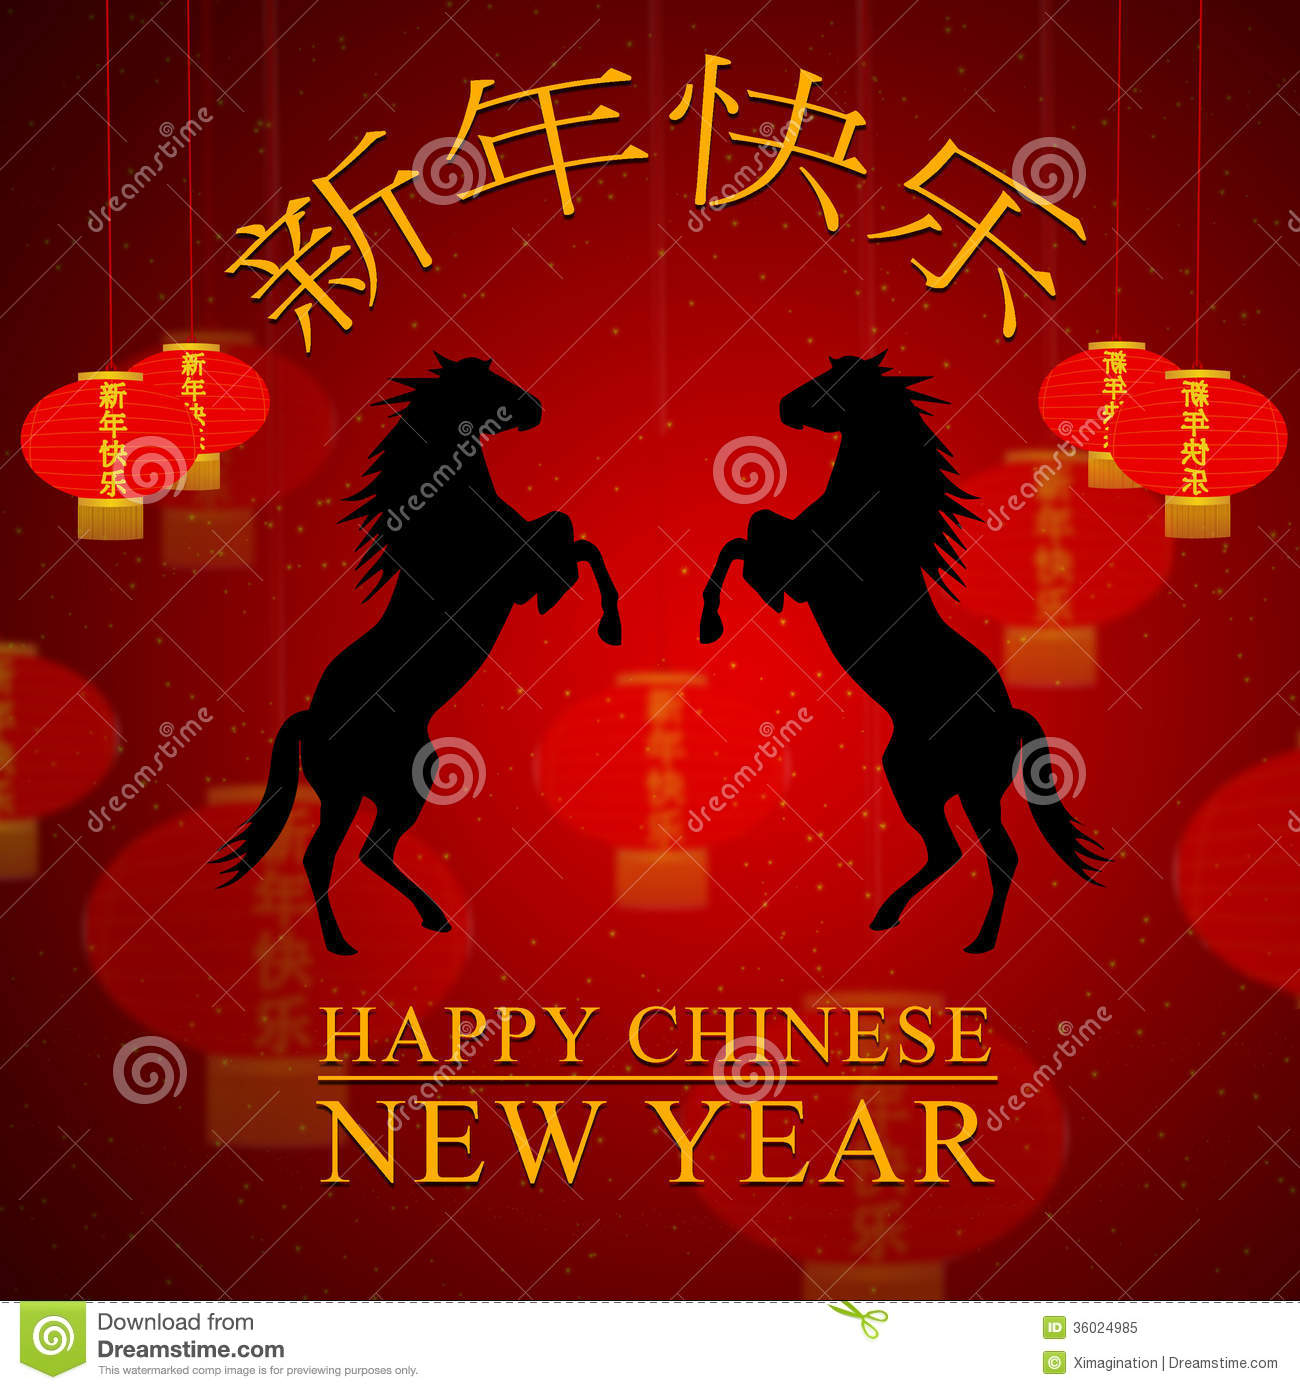 happy chinese new year card design royalty free stock photo